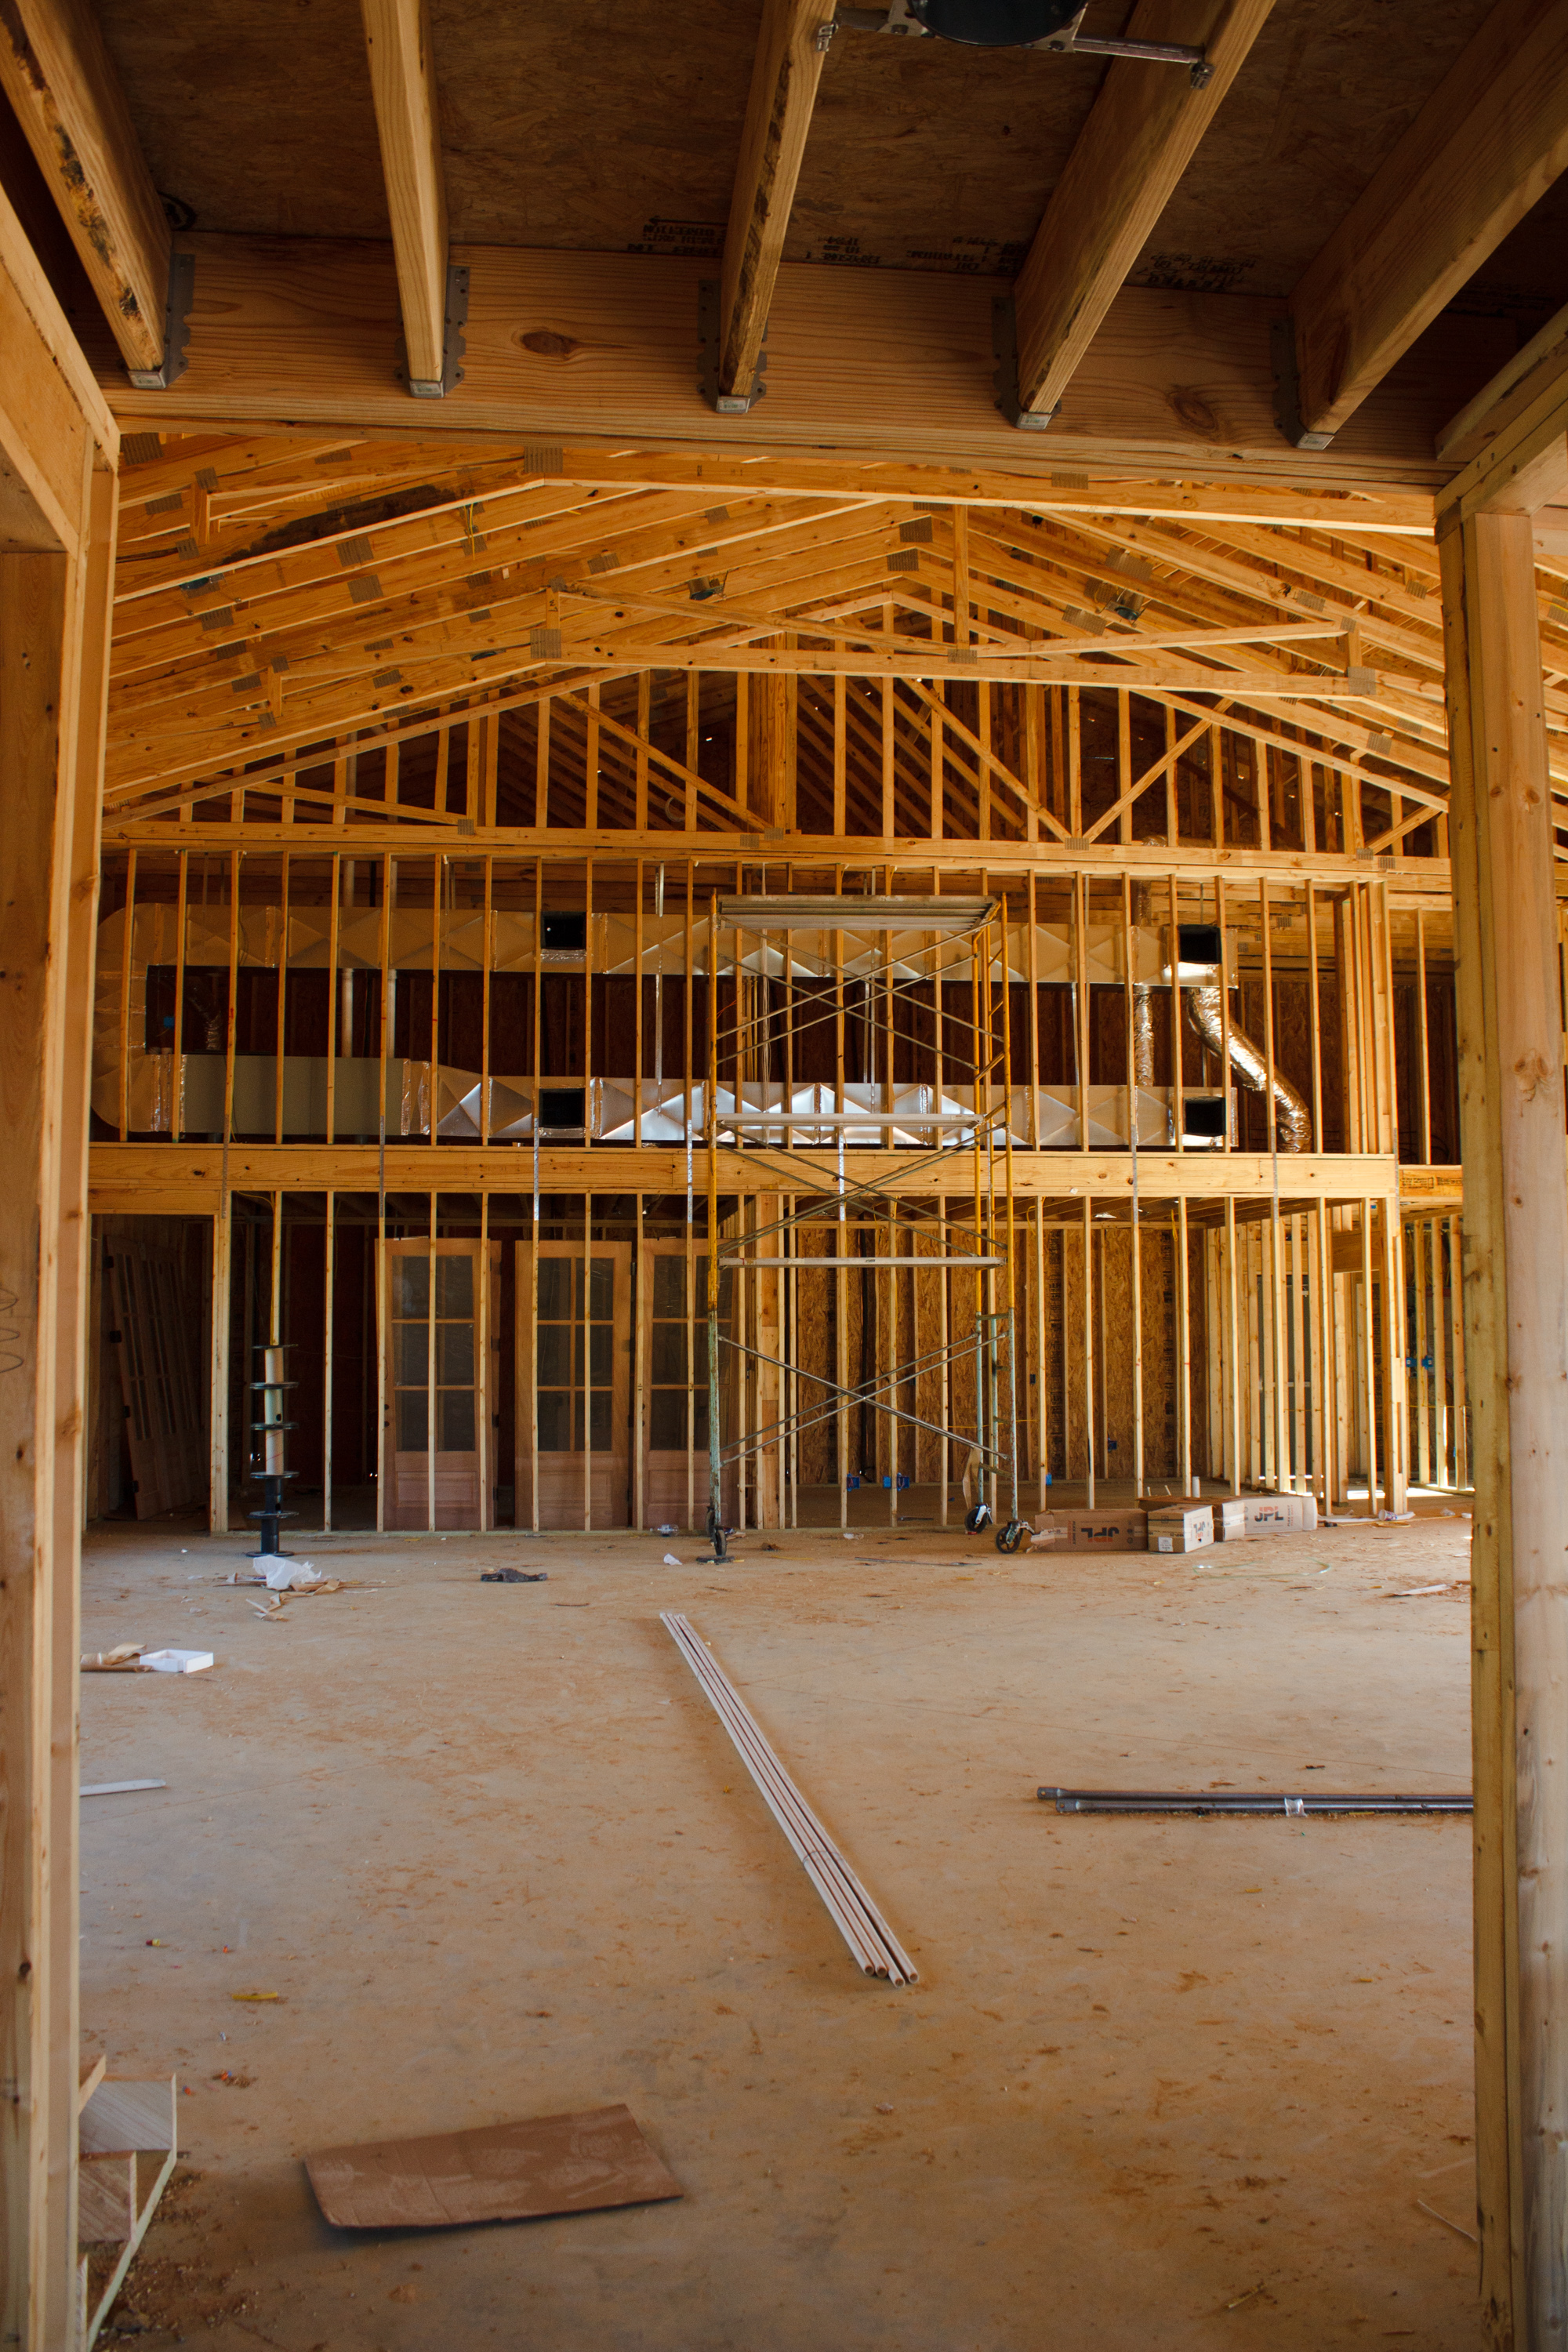 This is part of the main hall. We will have a storage area for tables/chairs and a catering kitchen.